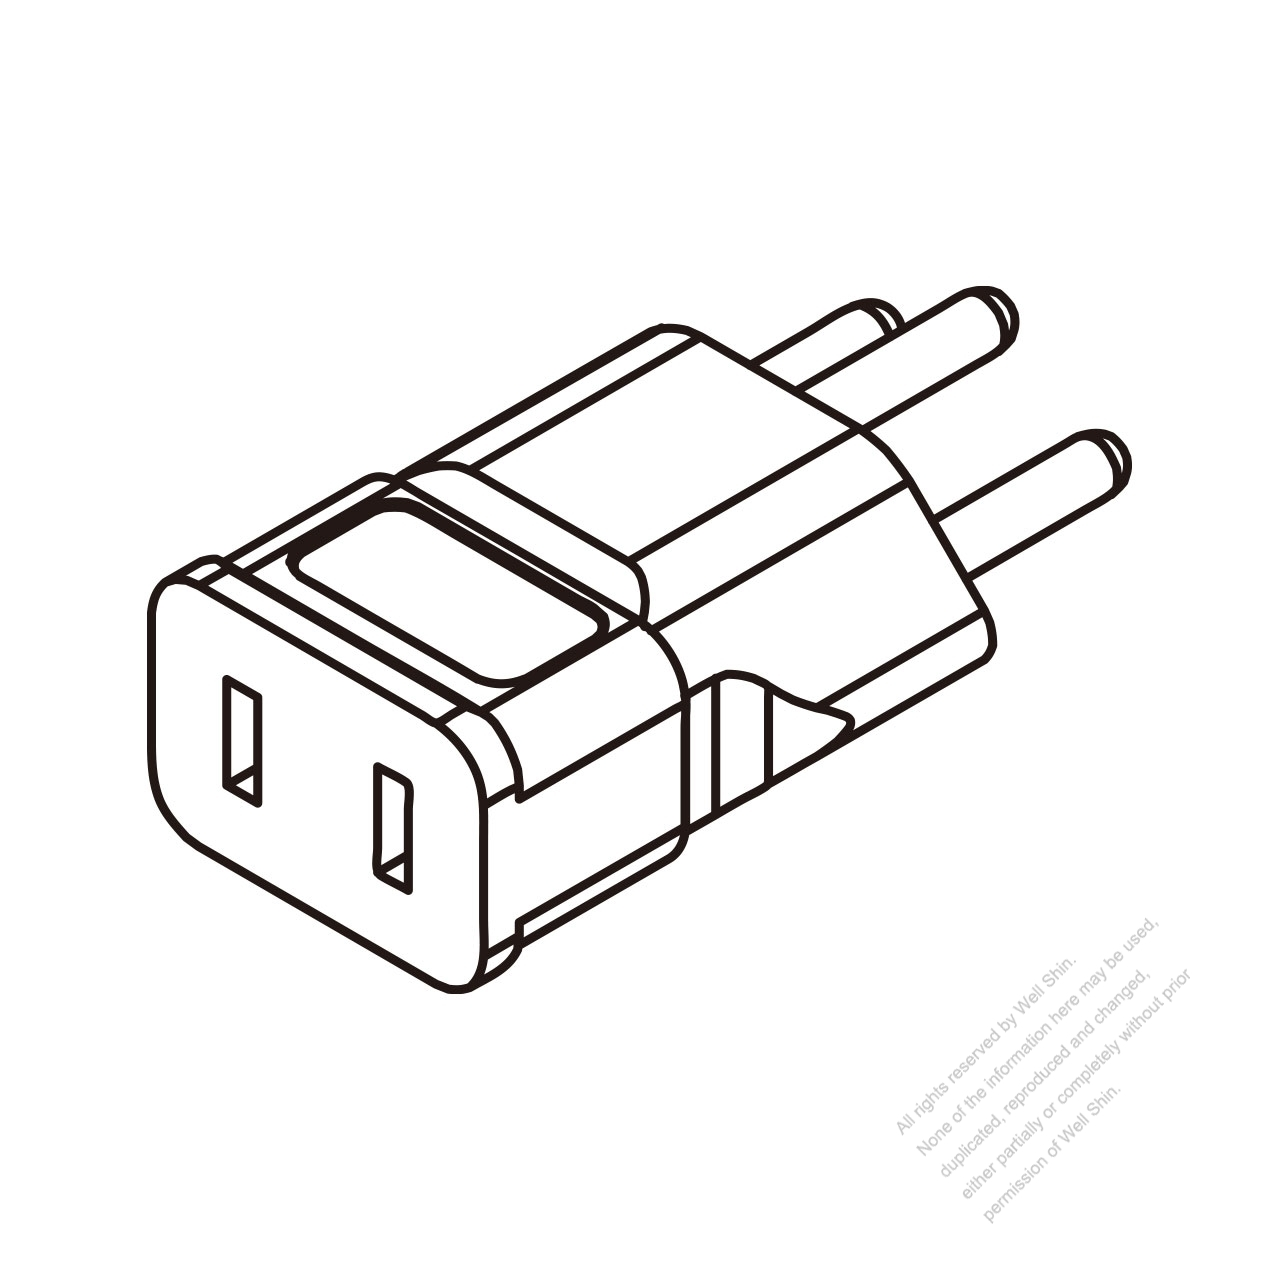 switzerland adapter plug to nema 1